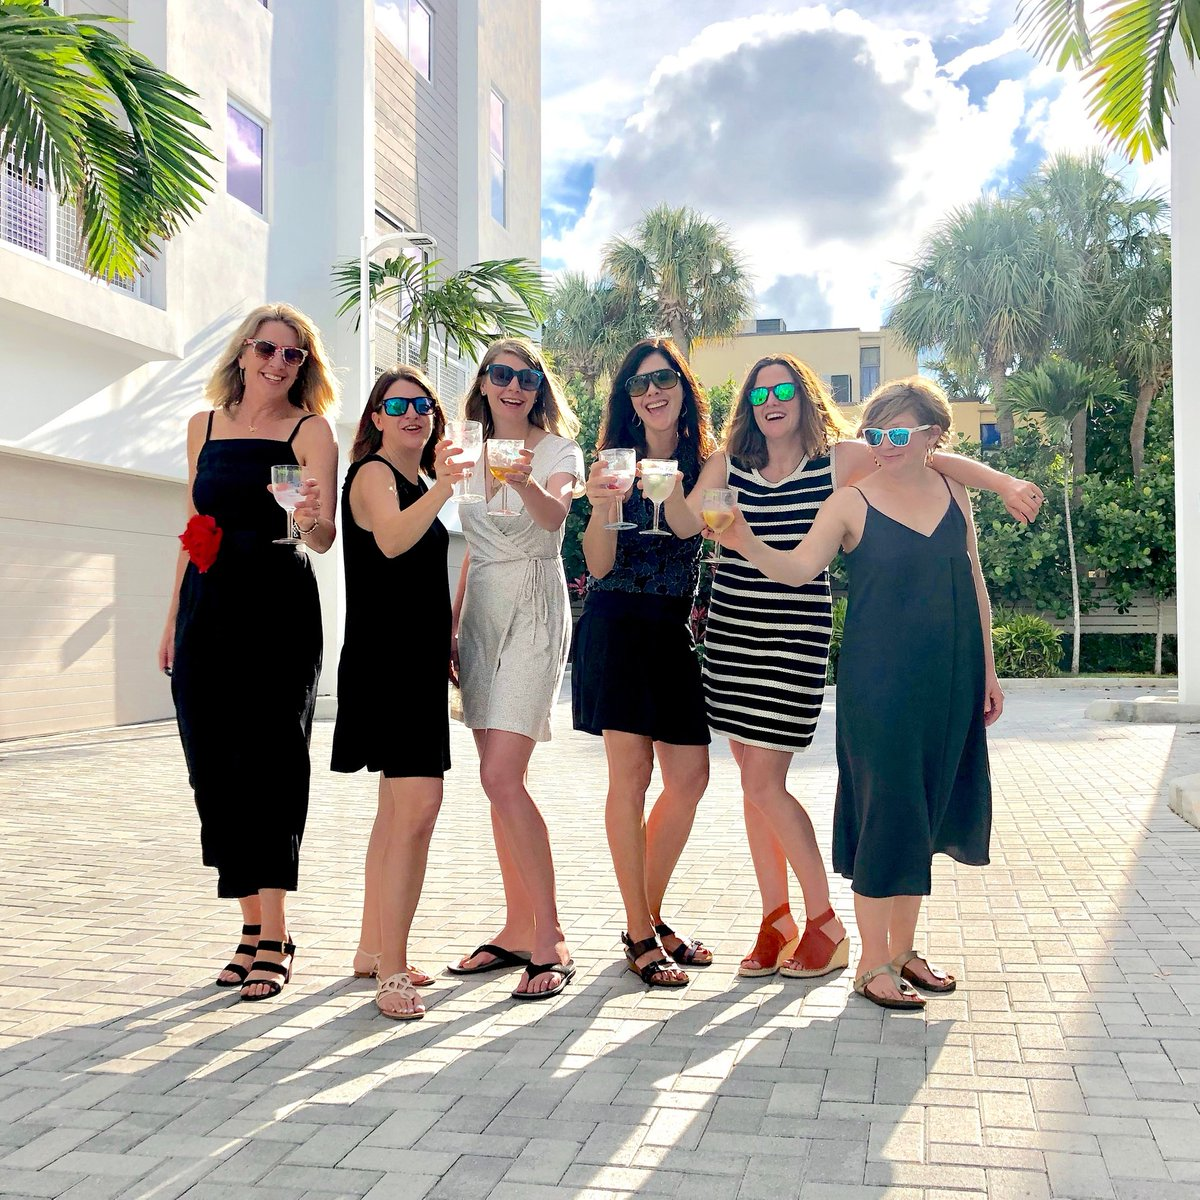 A fond memory from girls trip one year ago, with my sisters and the inlaws  (as we say 'outlaws')  Cheers to the holiday weekend, despite how different things will be.  Have fun, be safe! Keeping high hopes for girls trip 2021!  #fridayvibes #girlstrip pic.twitter.com/rBby6QqeJn